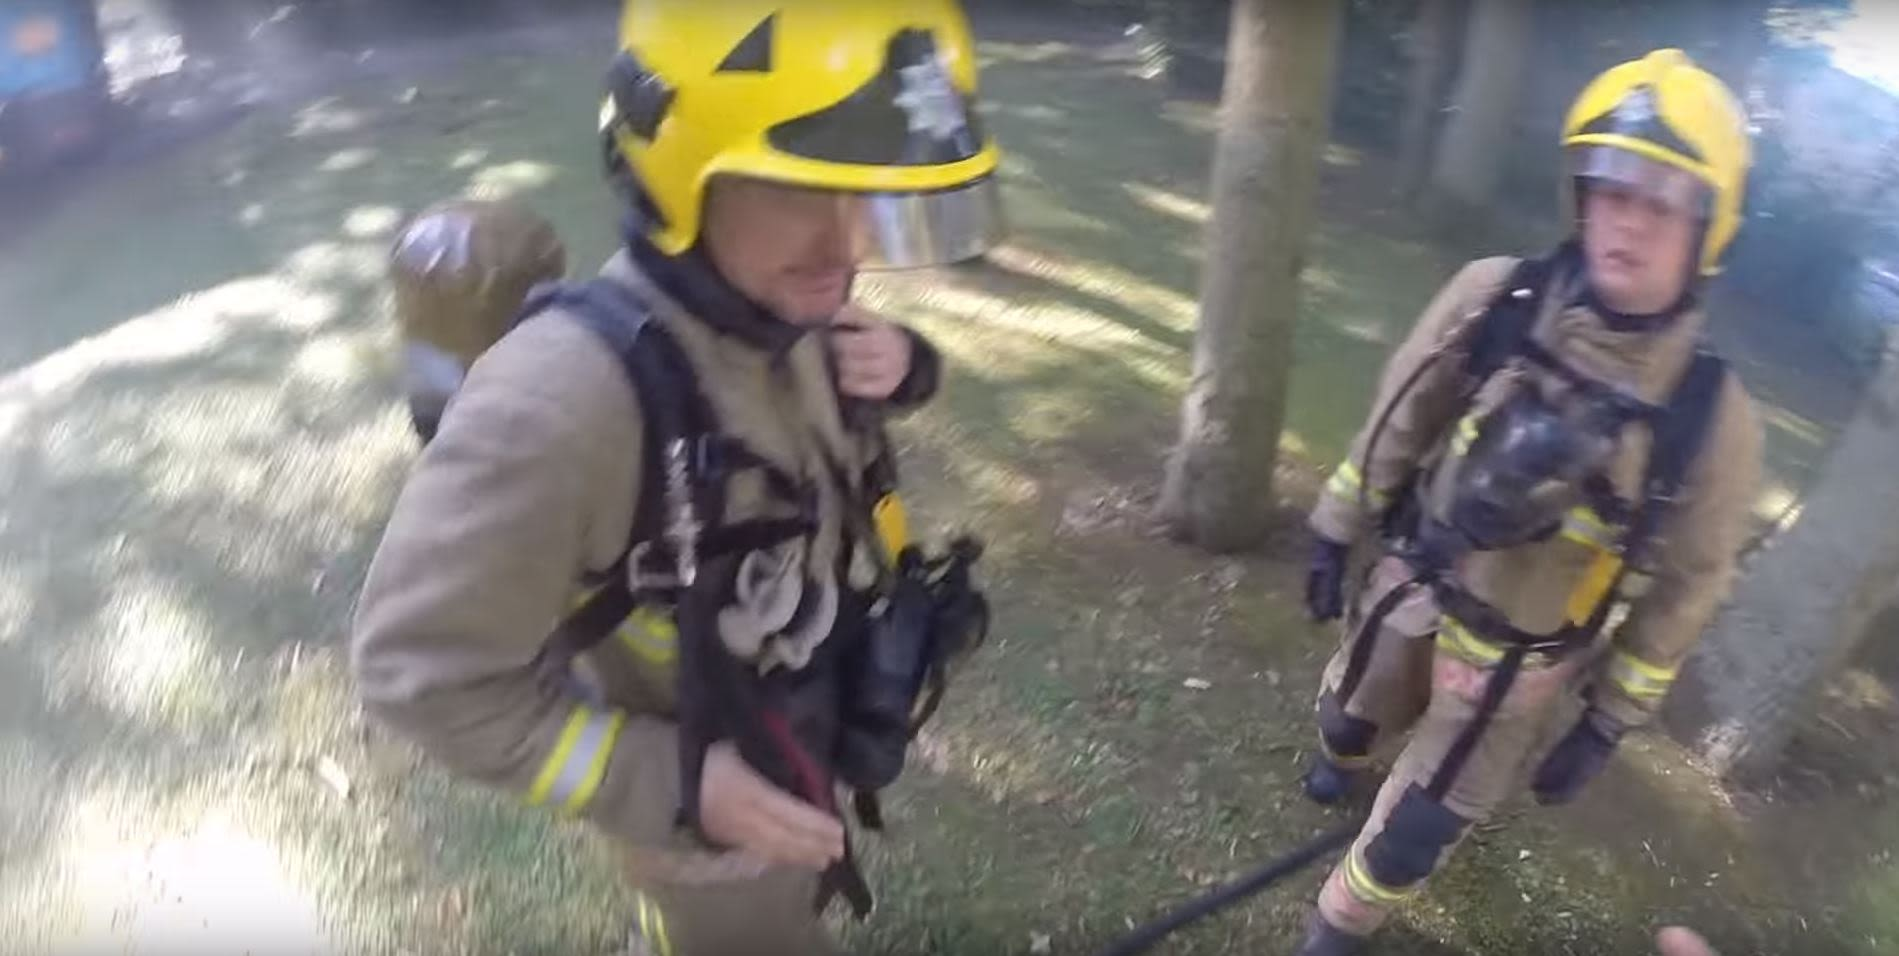 Firefighters from a helmet camera